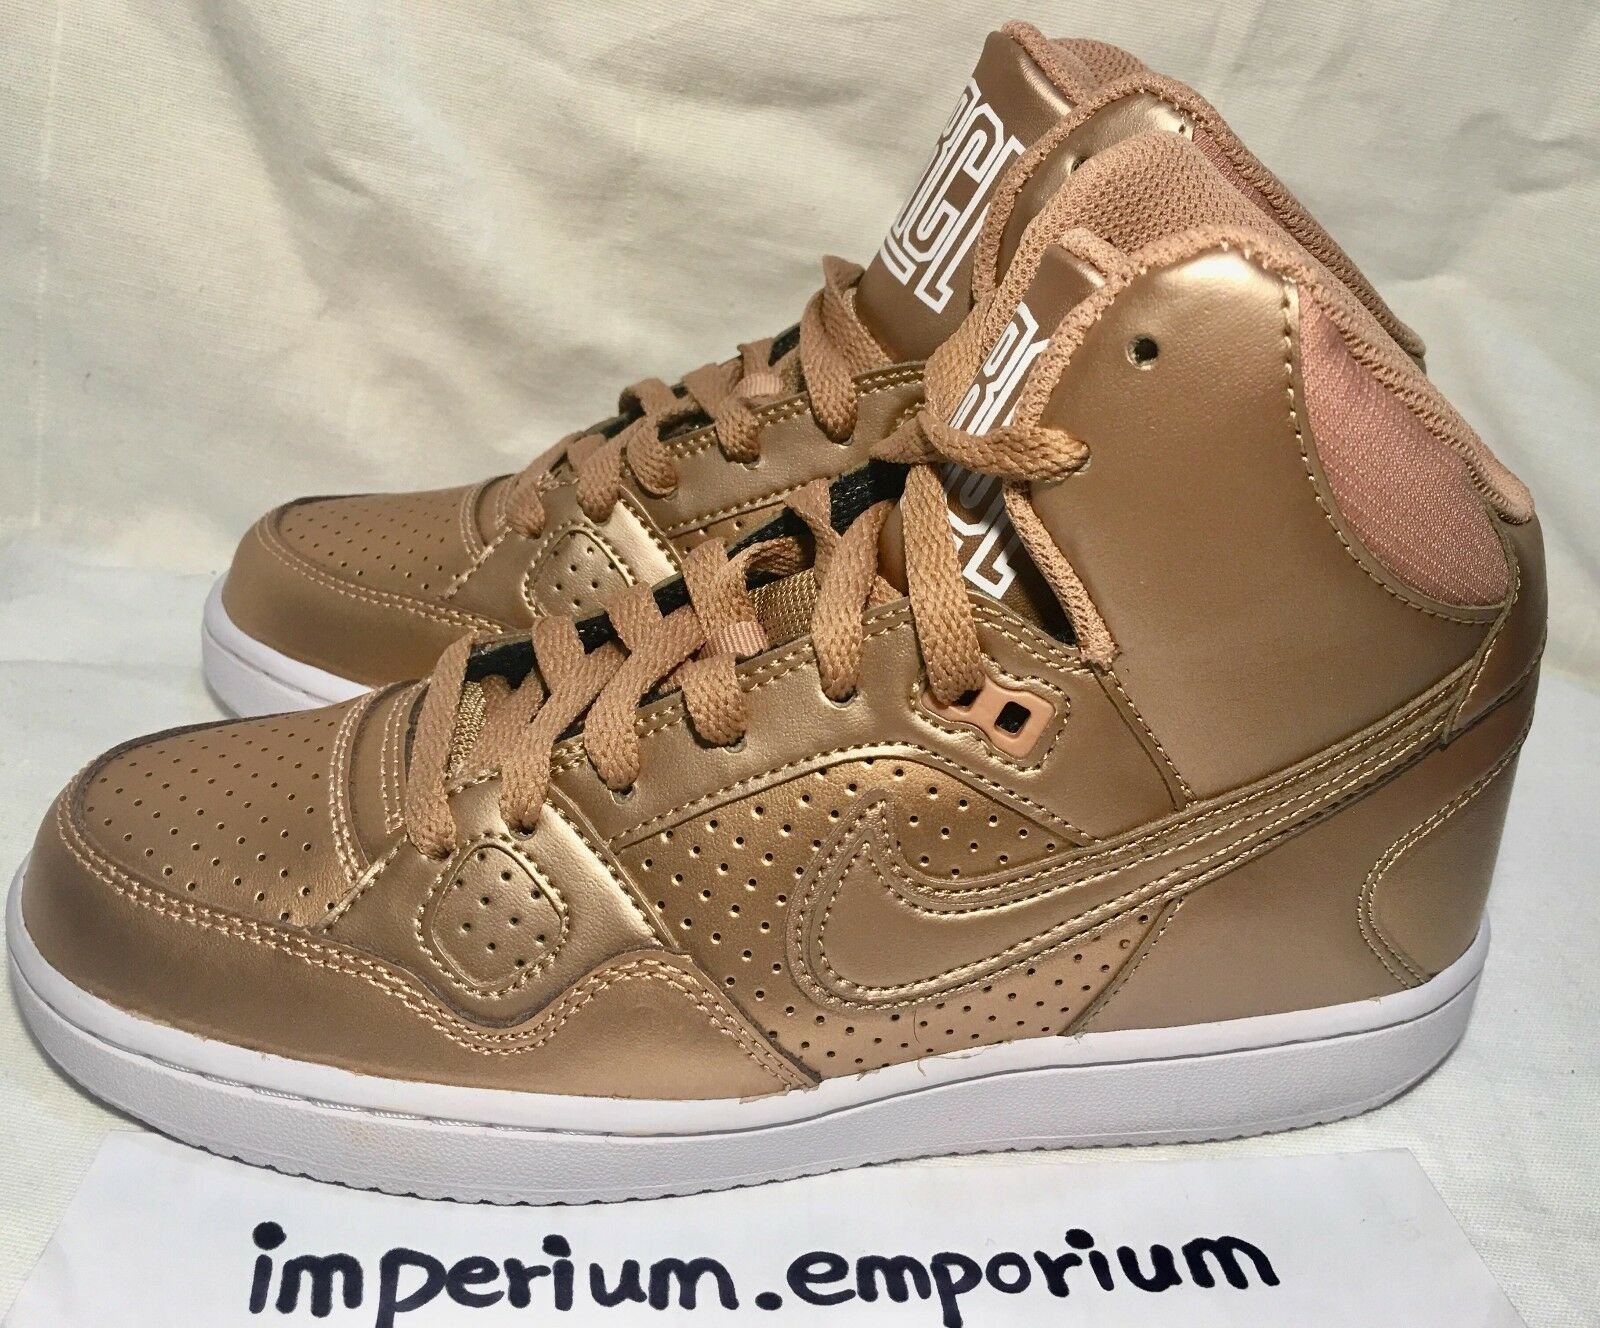 Femme Nike Son Of Obliger Mid Trainers Sneakers chaussures Bronze/Gold